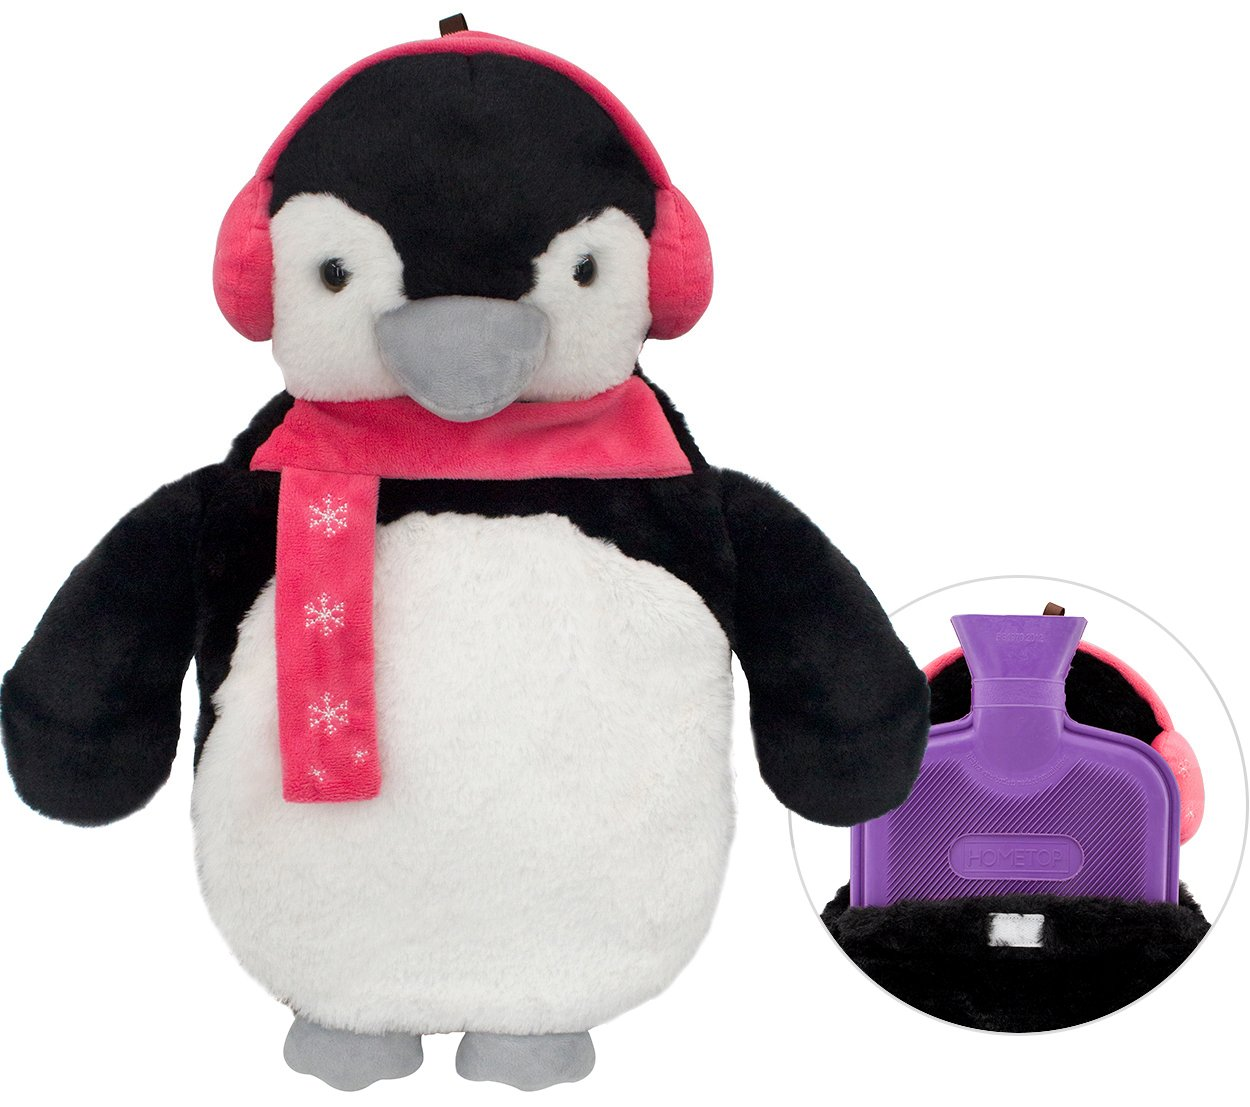 HomeTop Premium Classic Rubber Hot Water Bottle with Cute 3D Animal Cover (2L, Wilkes Penguin)